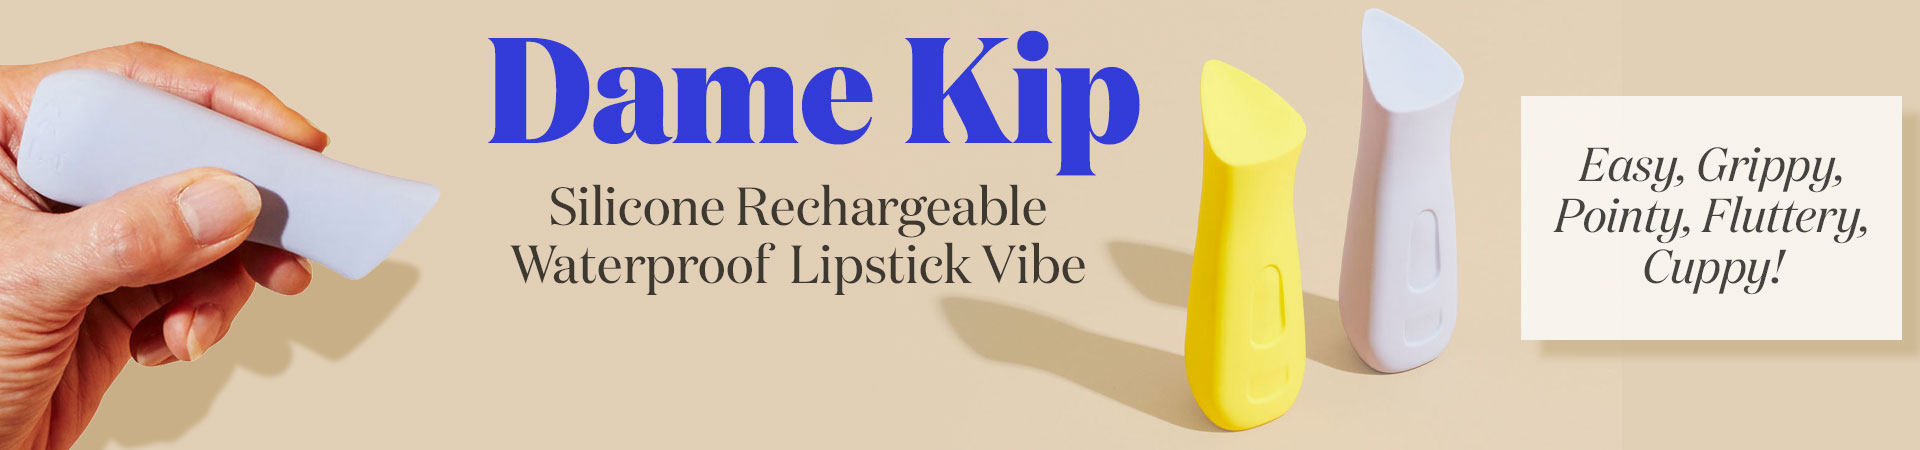 The Kip Silicone Rechargeable Waterproof Lipstick Vibrator by Dame